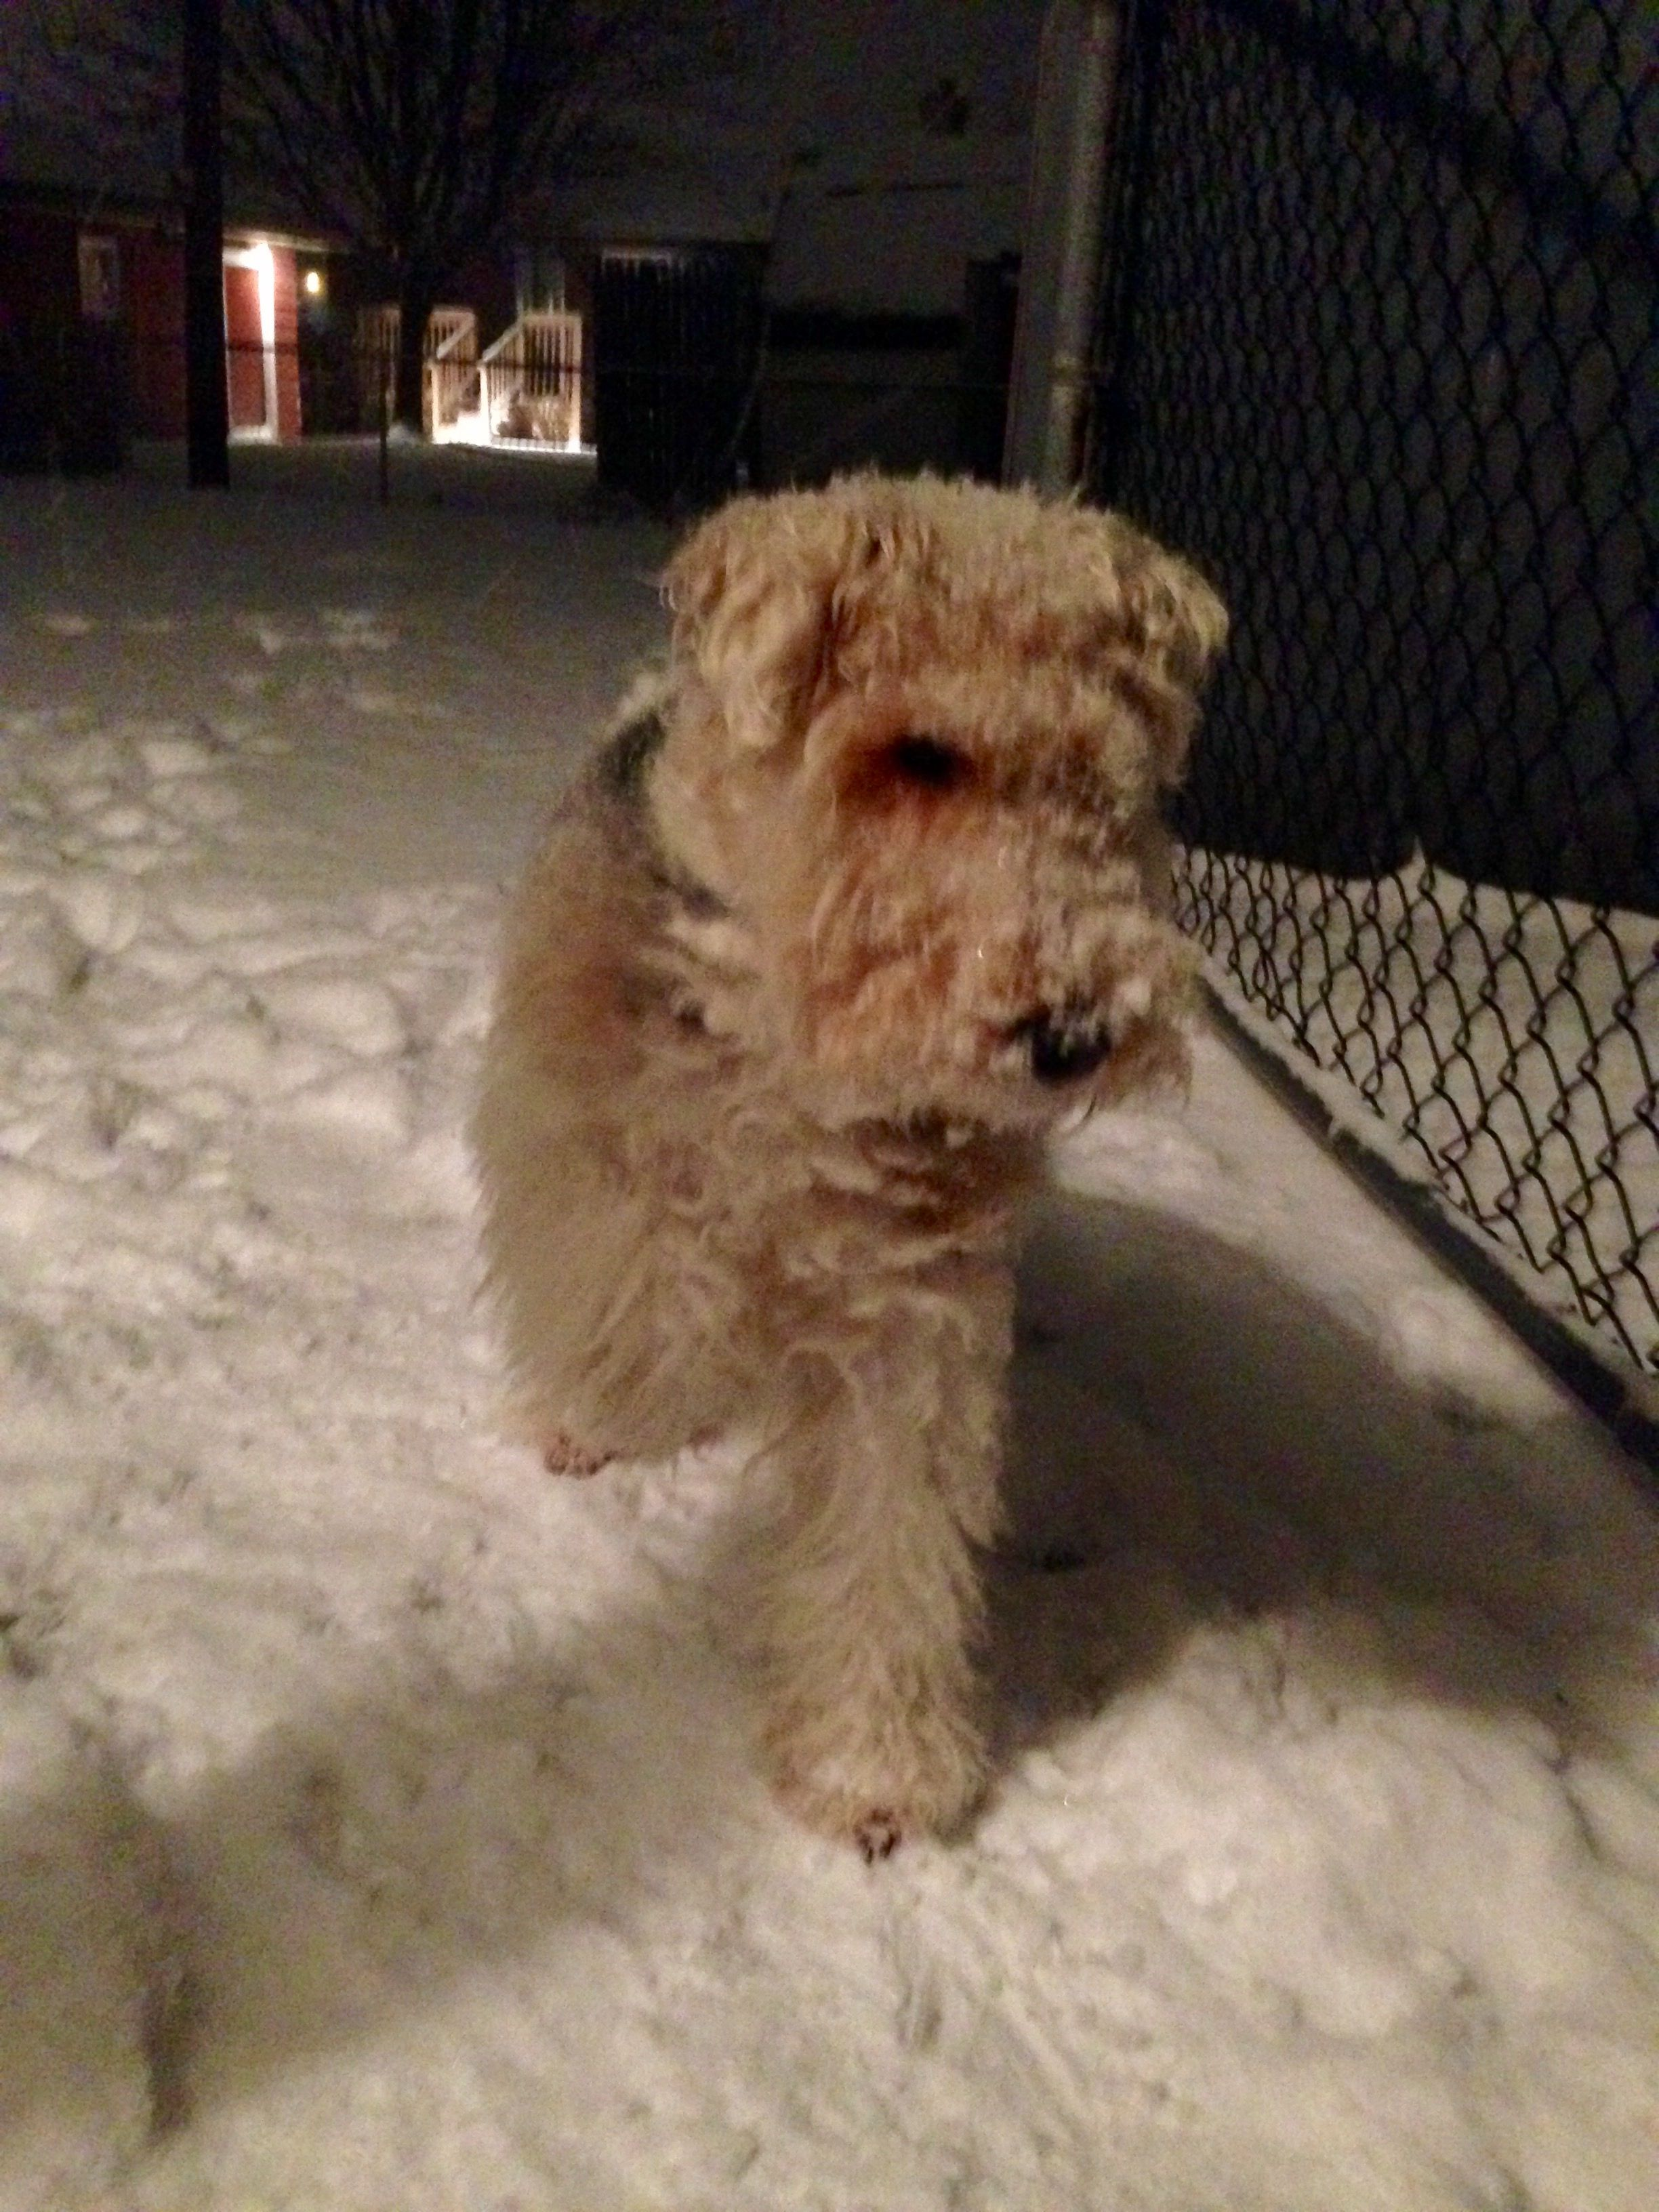 Time to go inside my paw is cold!